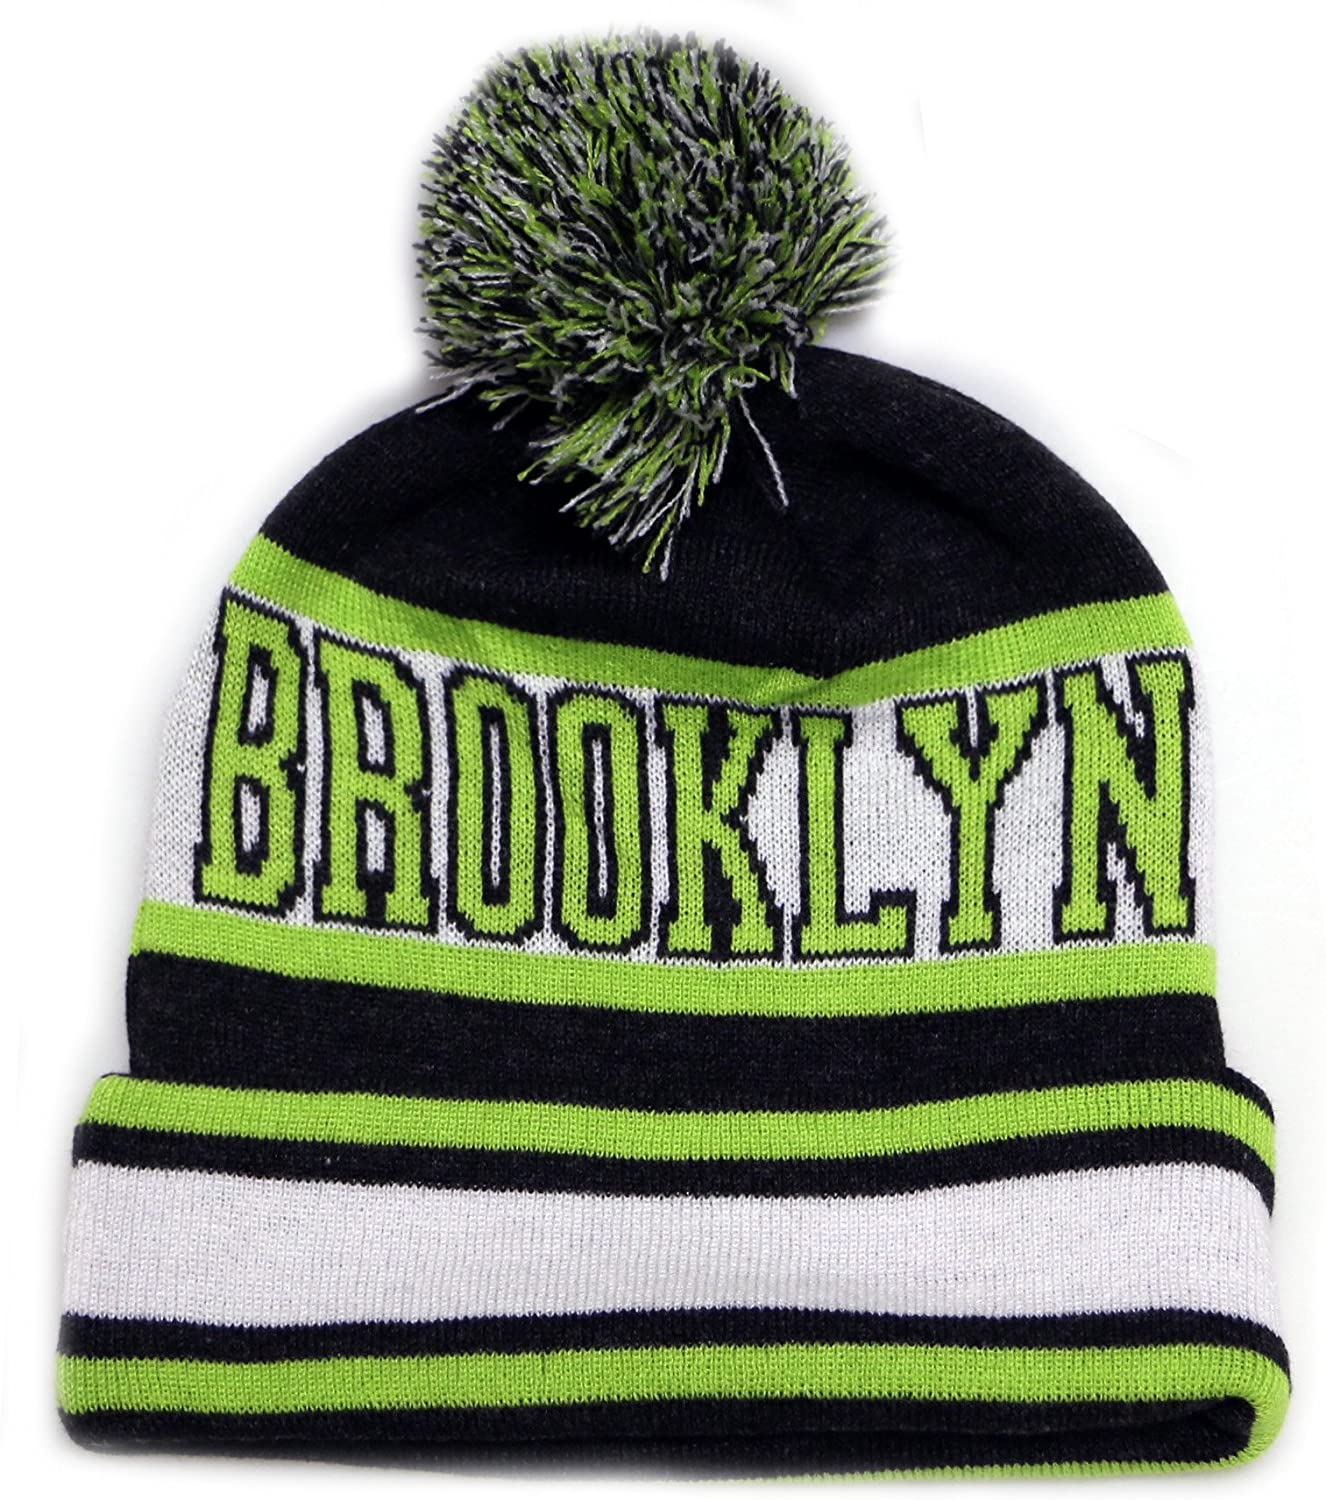 City Hunter Sk1130 Brooklyn Stripes Pom Pom Beanie Hats - Dark Grey/lime